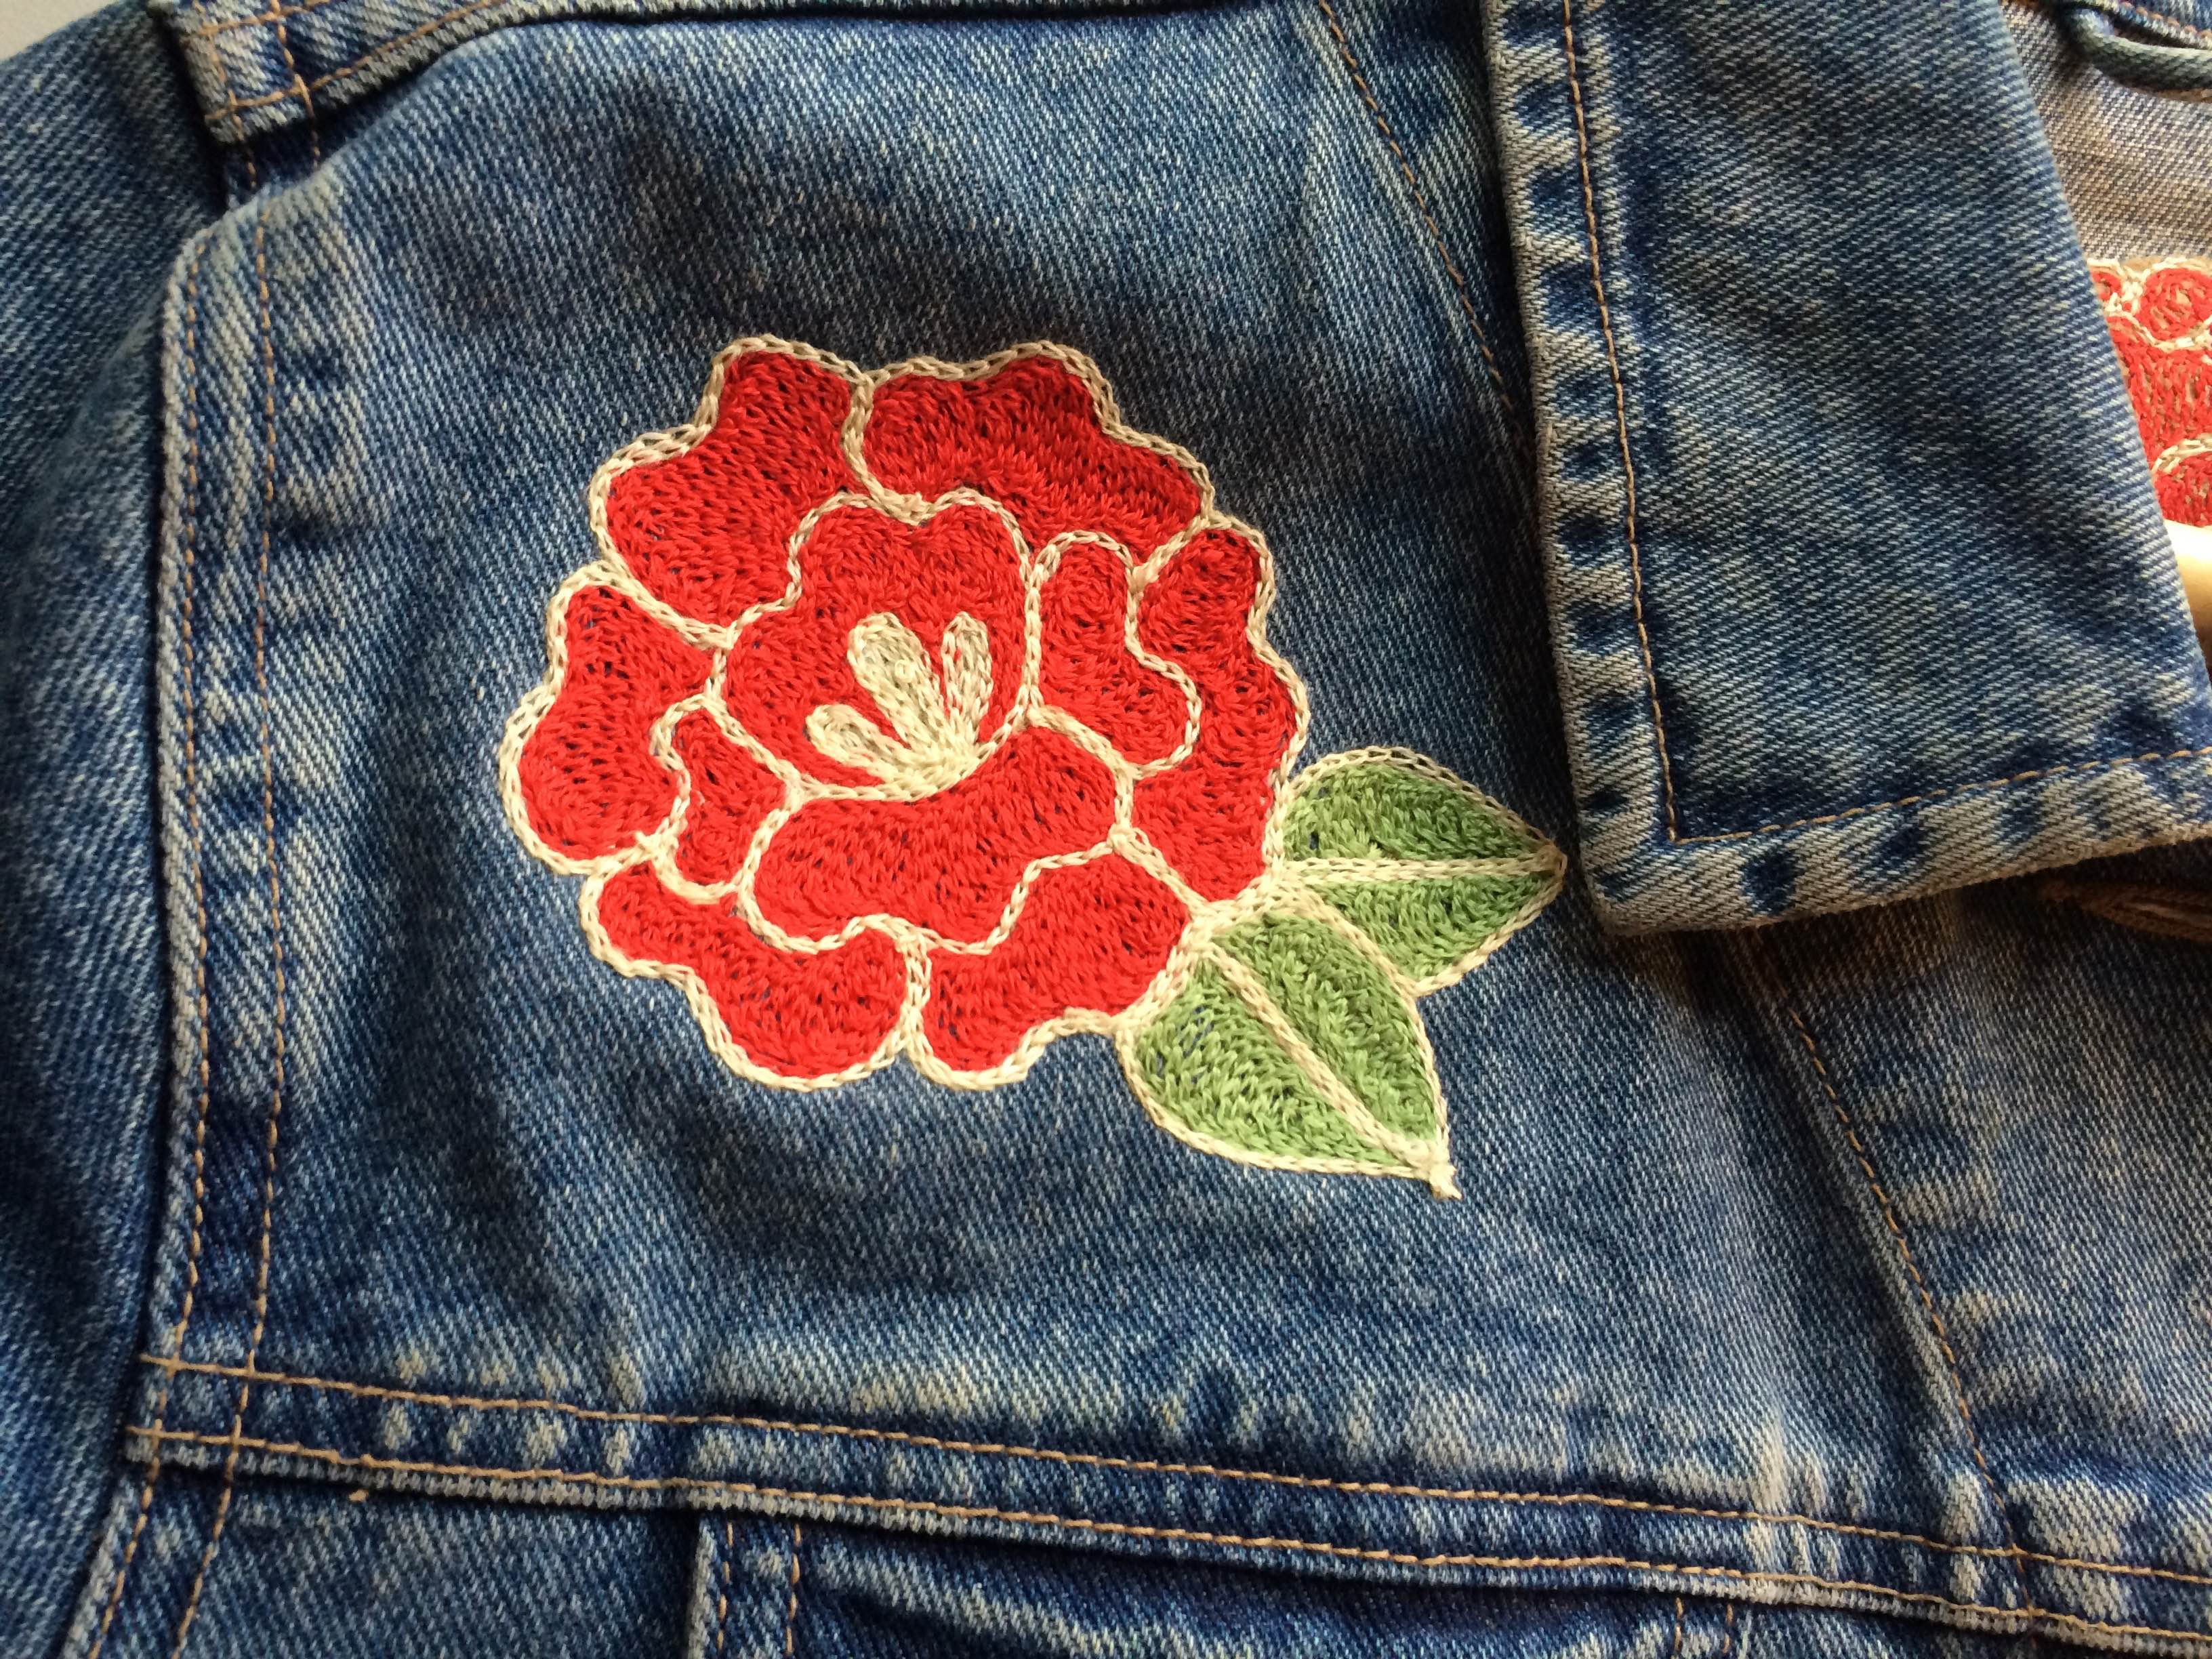 Chainstitch embroidered rose